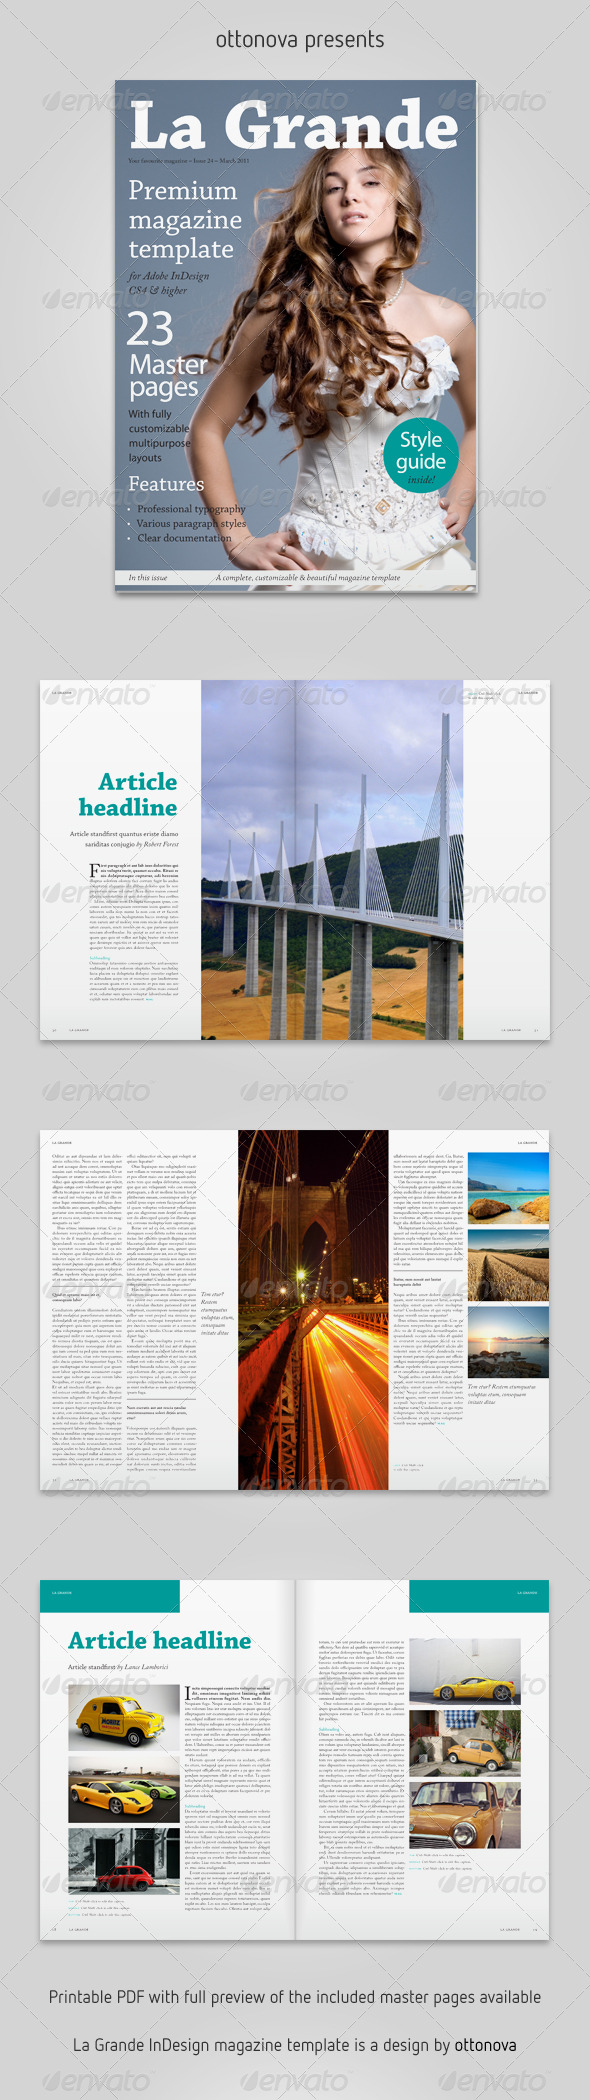 GraphicRiver La Grande InDesign magazine template 188444